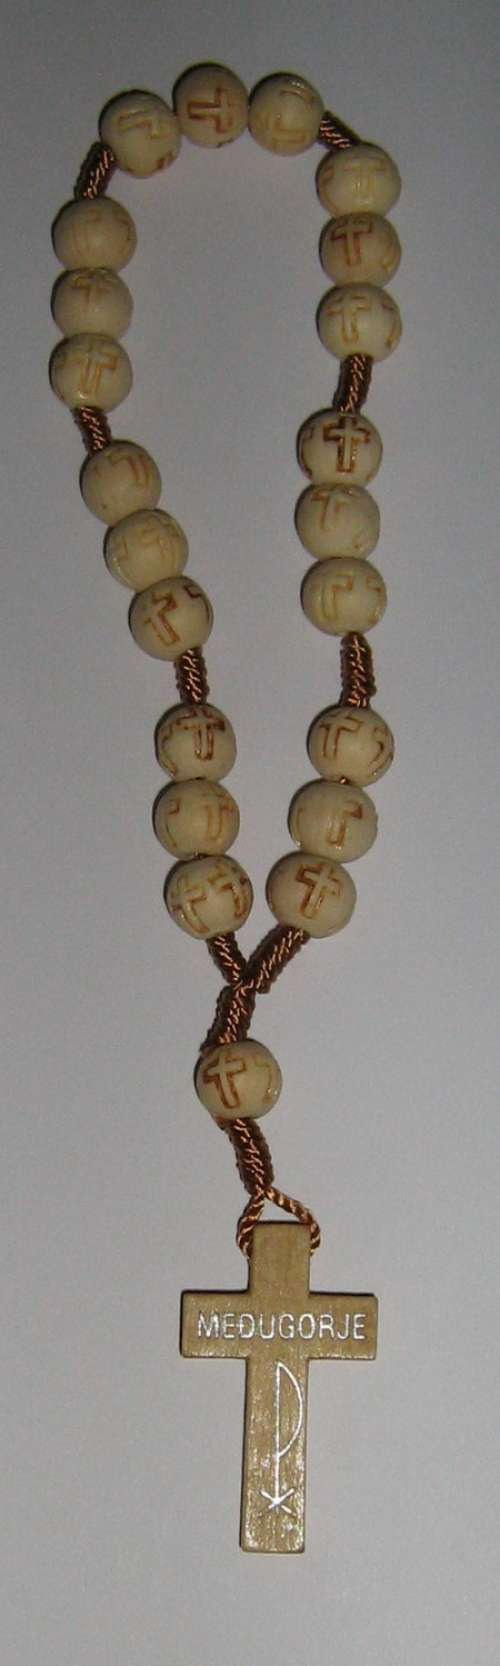 F8110022 WH - Wooden Rosary white - Krunica Gospe Međugorske - Rosary of Our Lady of Medjugorje